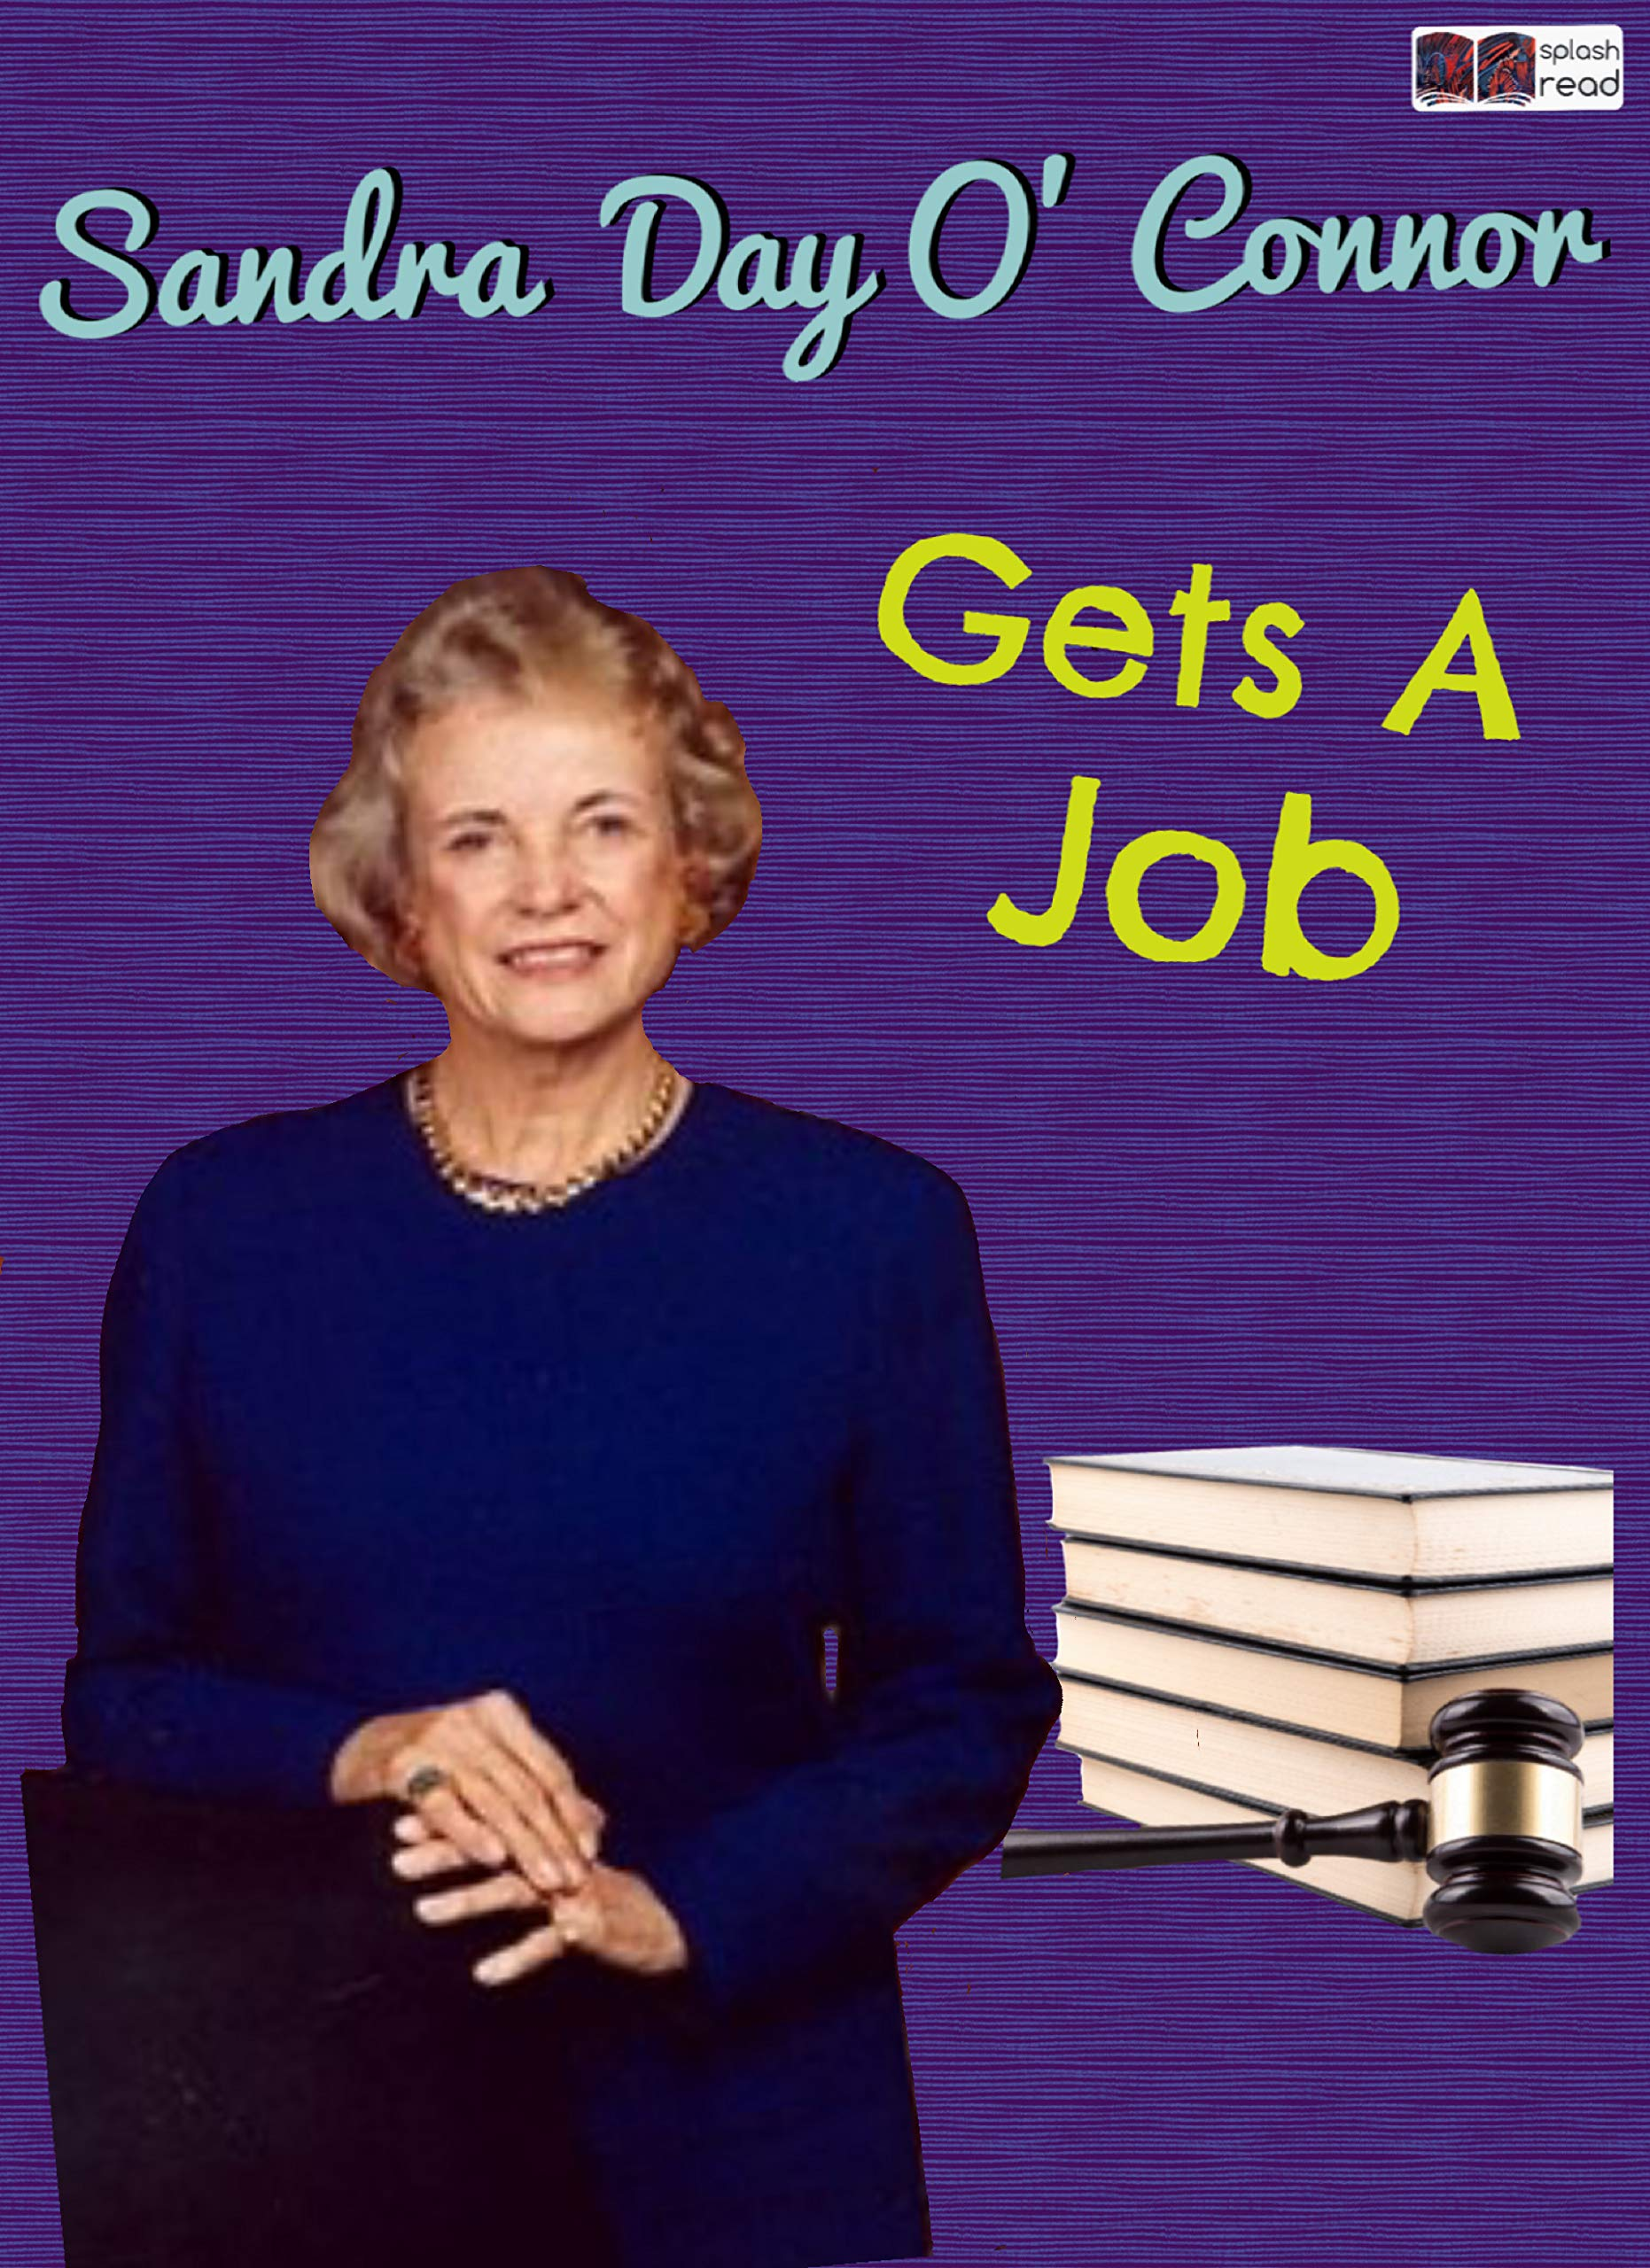 Sandra Day O'Connor Gets a Job: A Historical Fiction Short Story for Kids